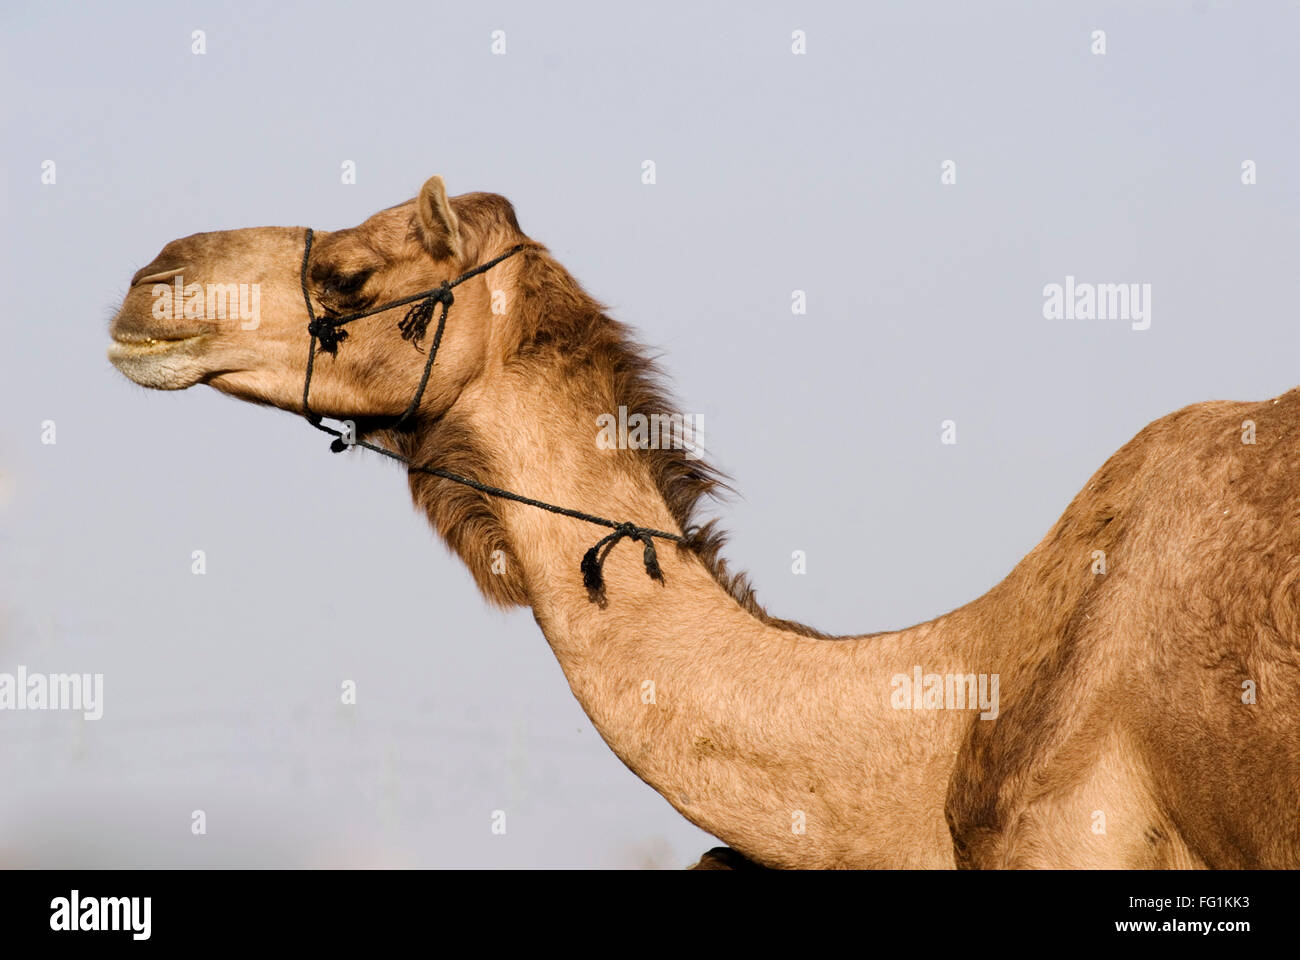 Camel in Camel Research Centre, Bikaner, Rajasthan , India - Stock Image